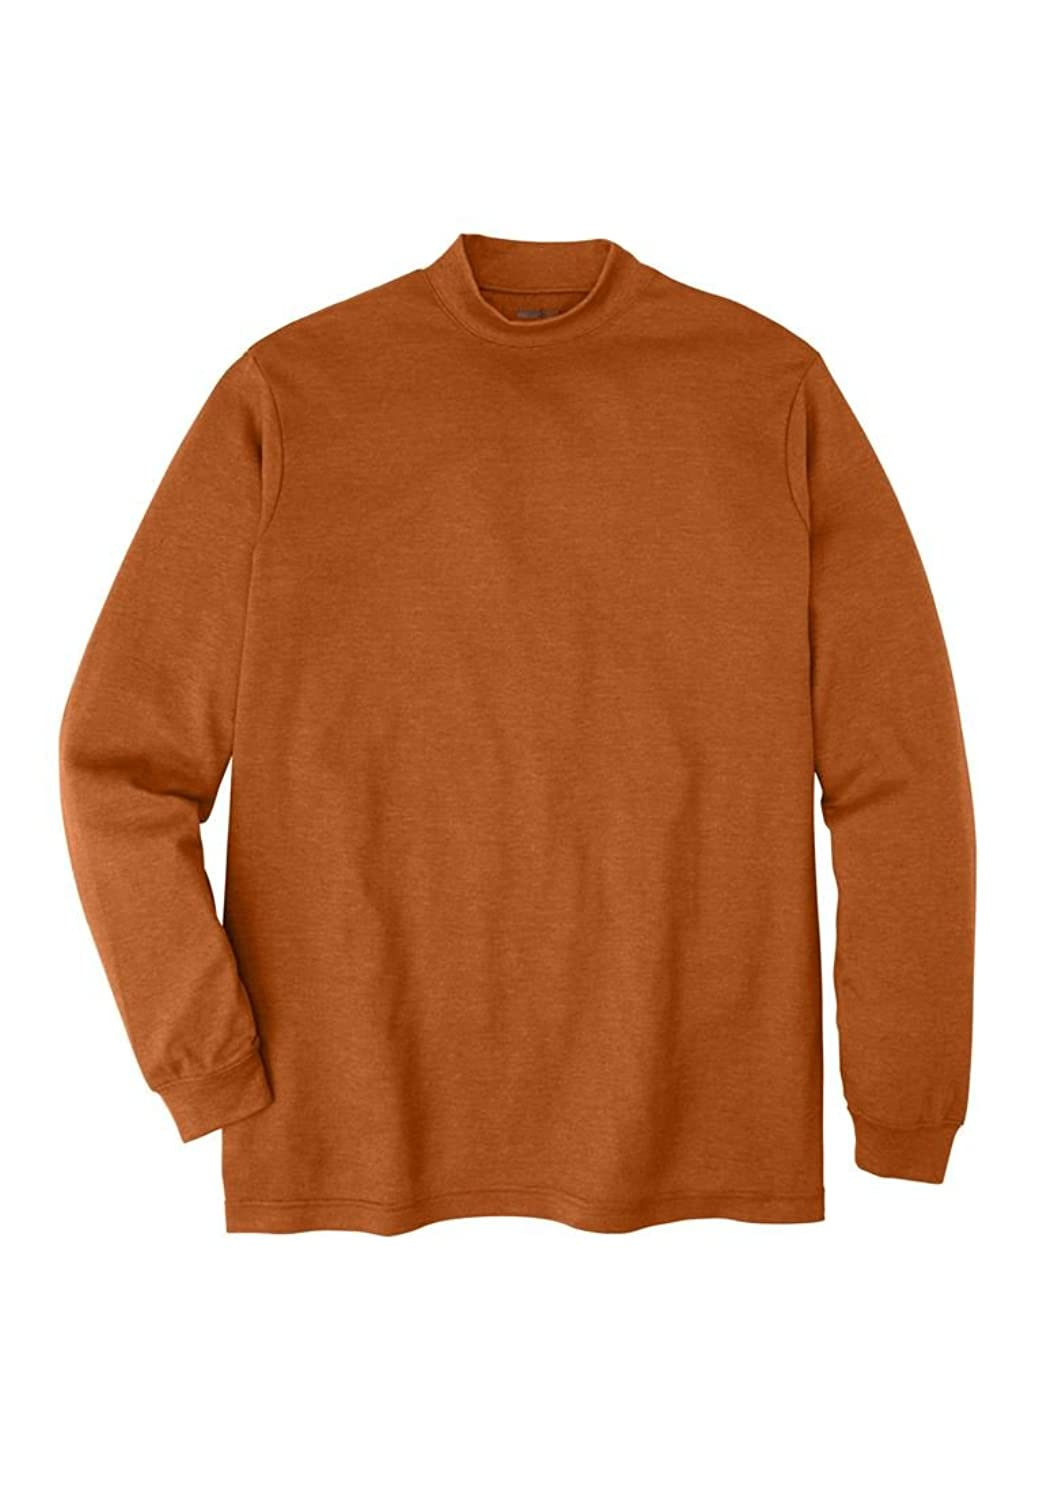 Kingsize Men's Big & Tall Mock Turtleneck Long-Sleeve Cotton Tee ...